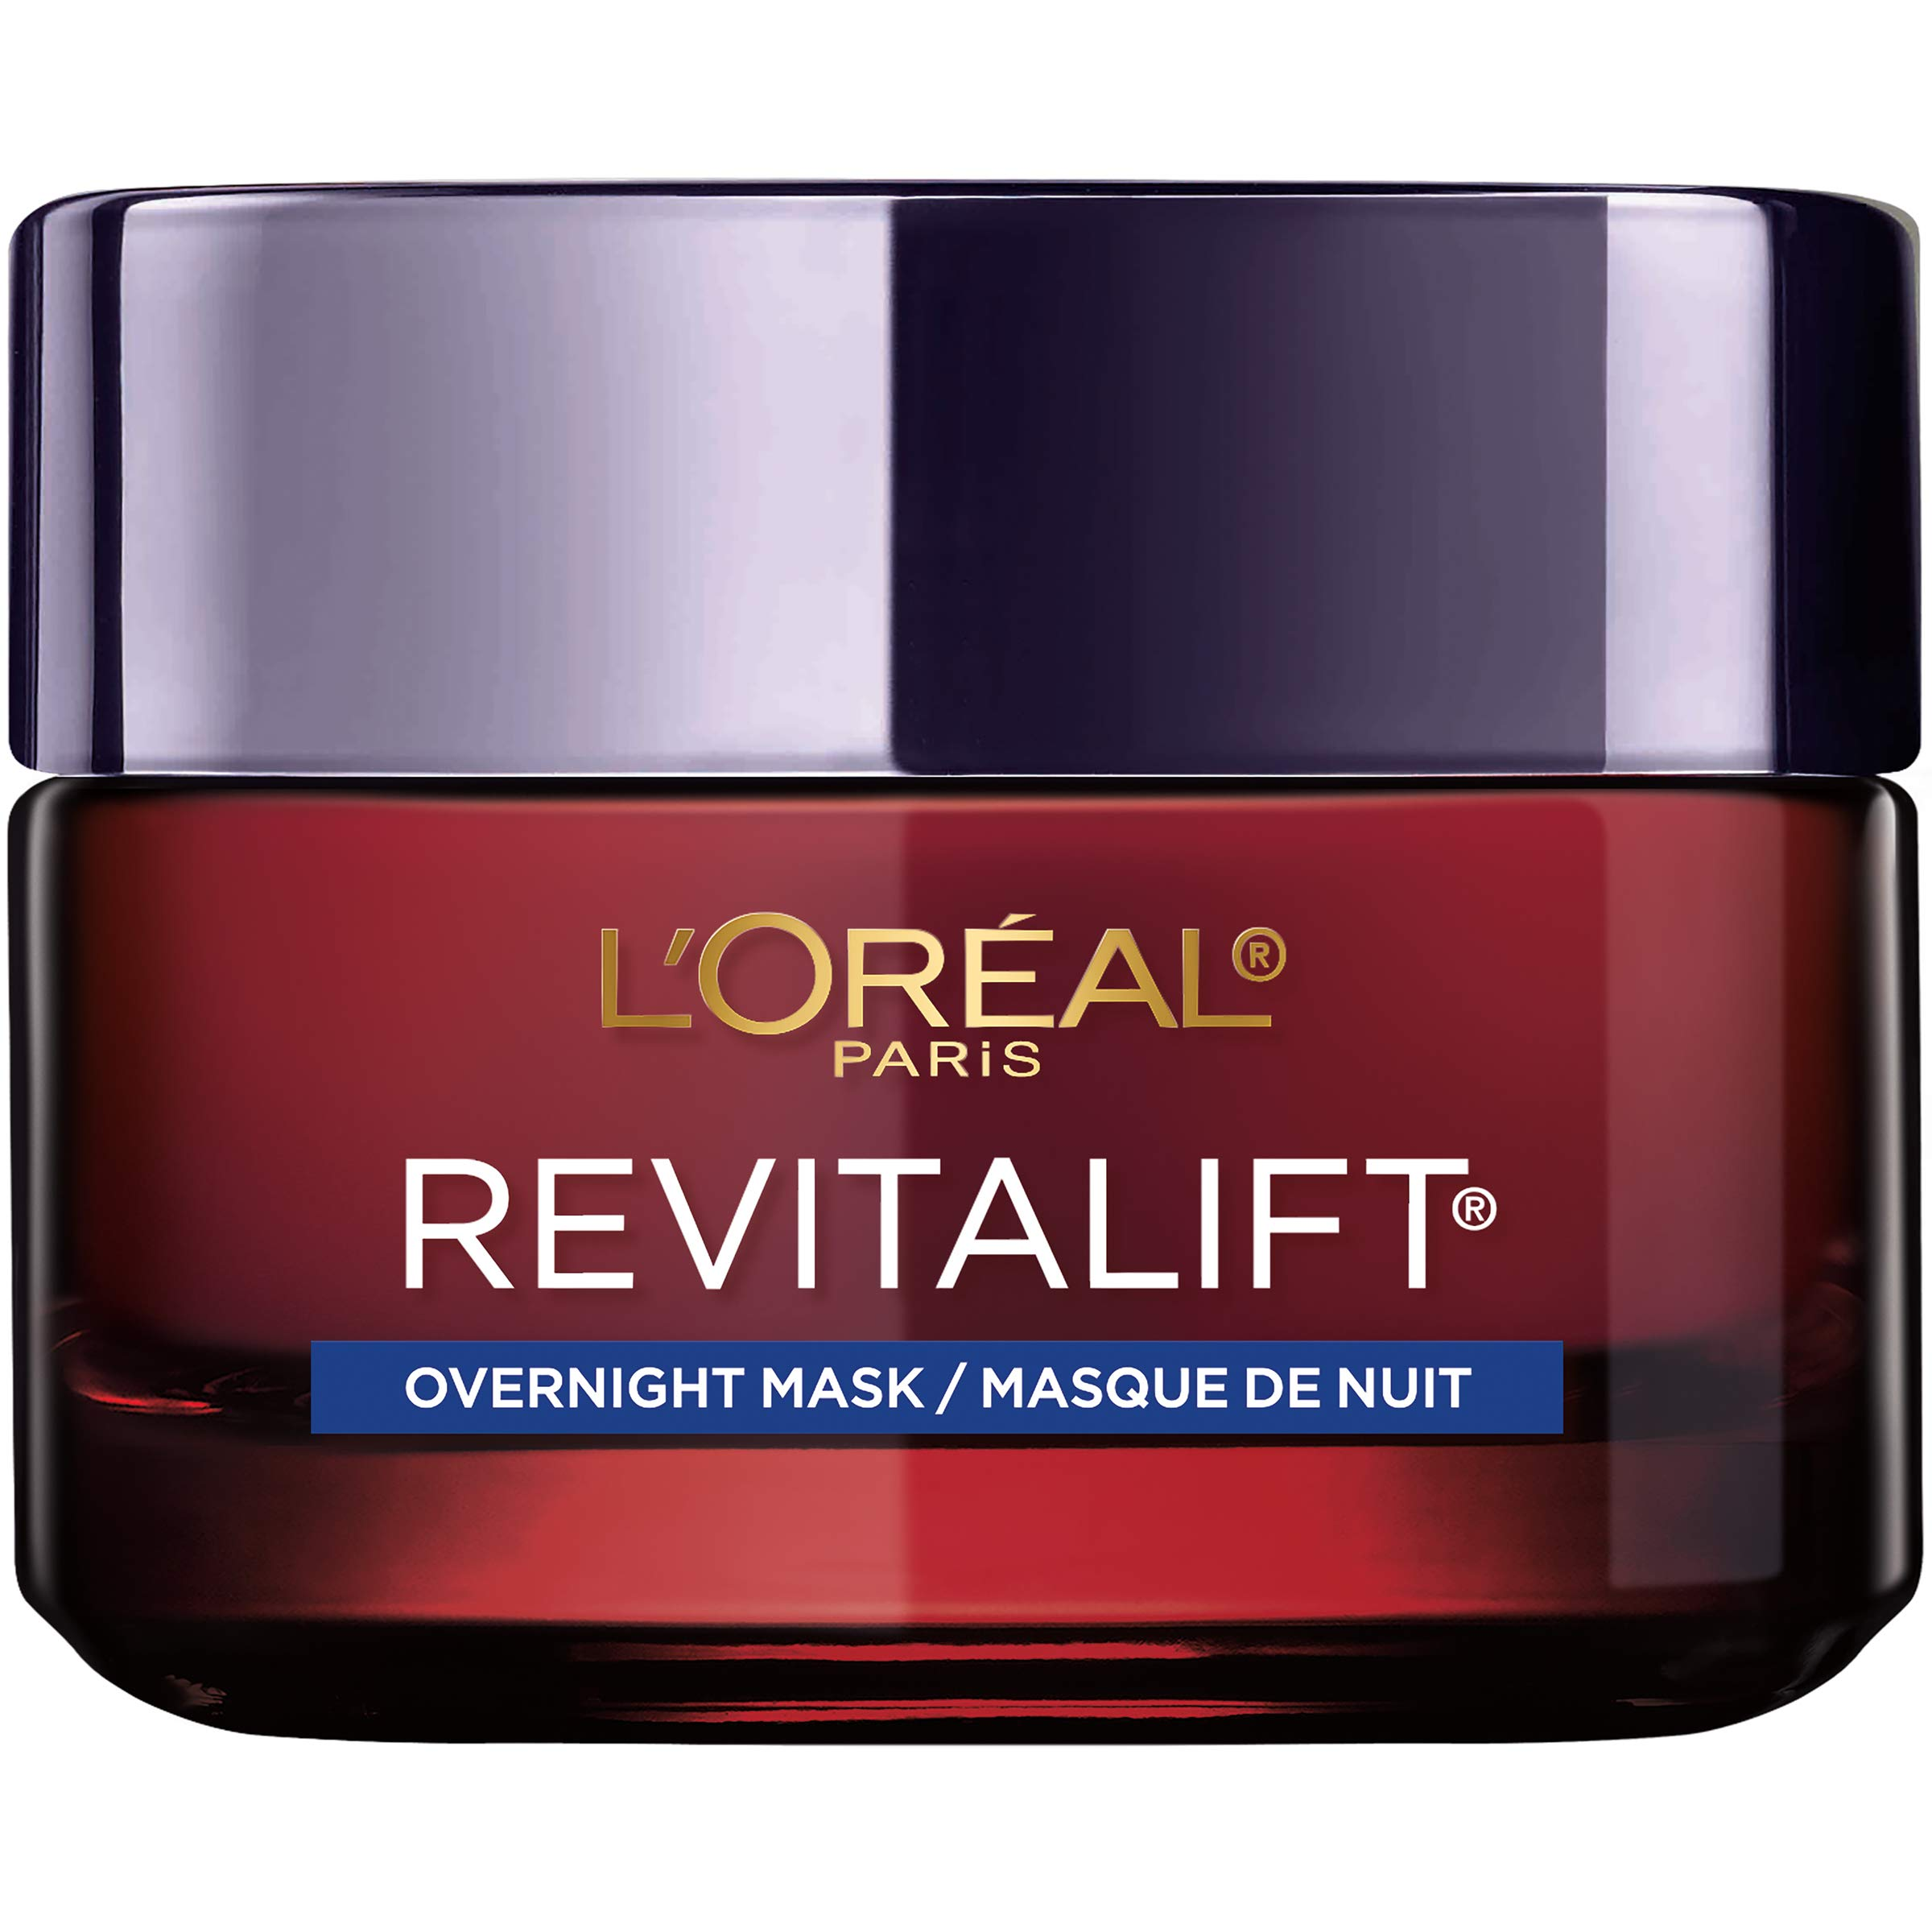 L'Oreal Paris Skincare Revitalift Triple Power Intensive Overnight Face Mask with Pro Retinol, Vitamin C and Hyaluronic Acid, to Visibly Reduce Wrinkles, Firm and Brighten Skin, 1.7 Oz